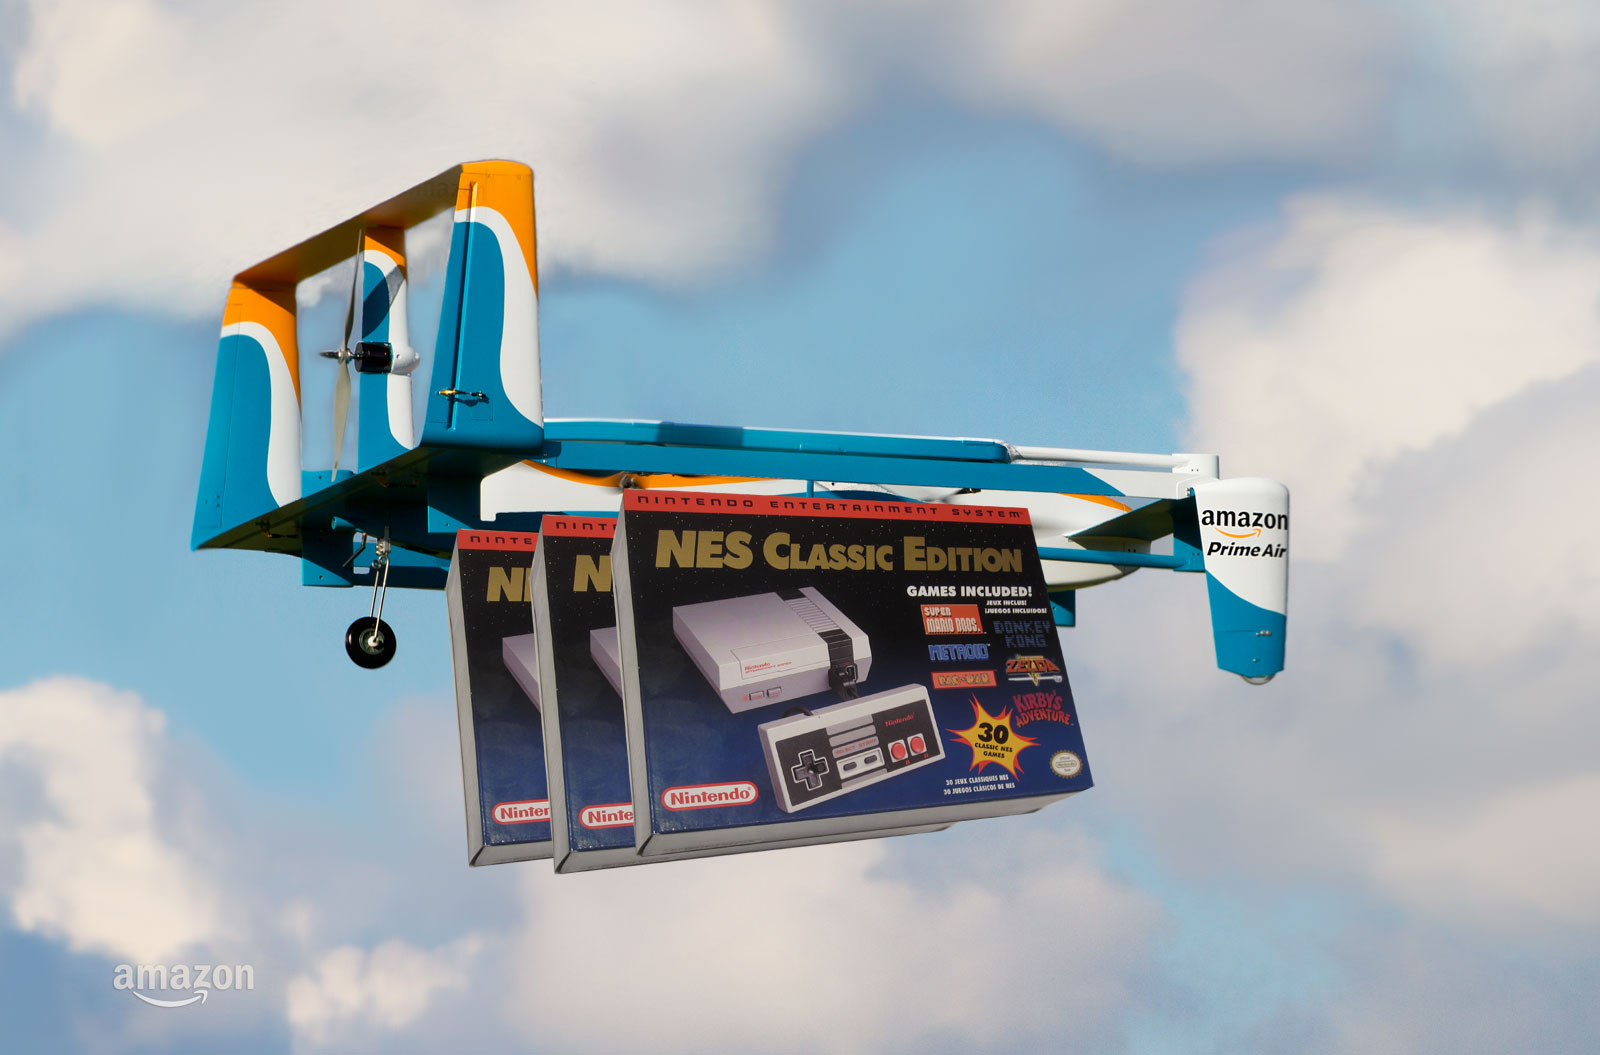 NES Classic Edition on an Amazon delivery drone